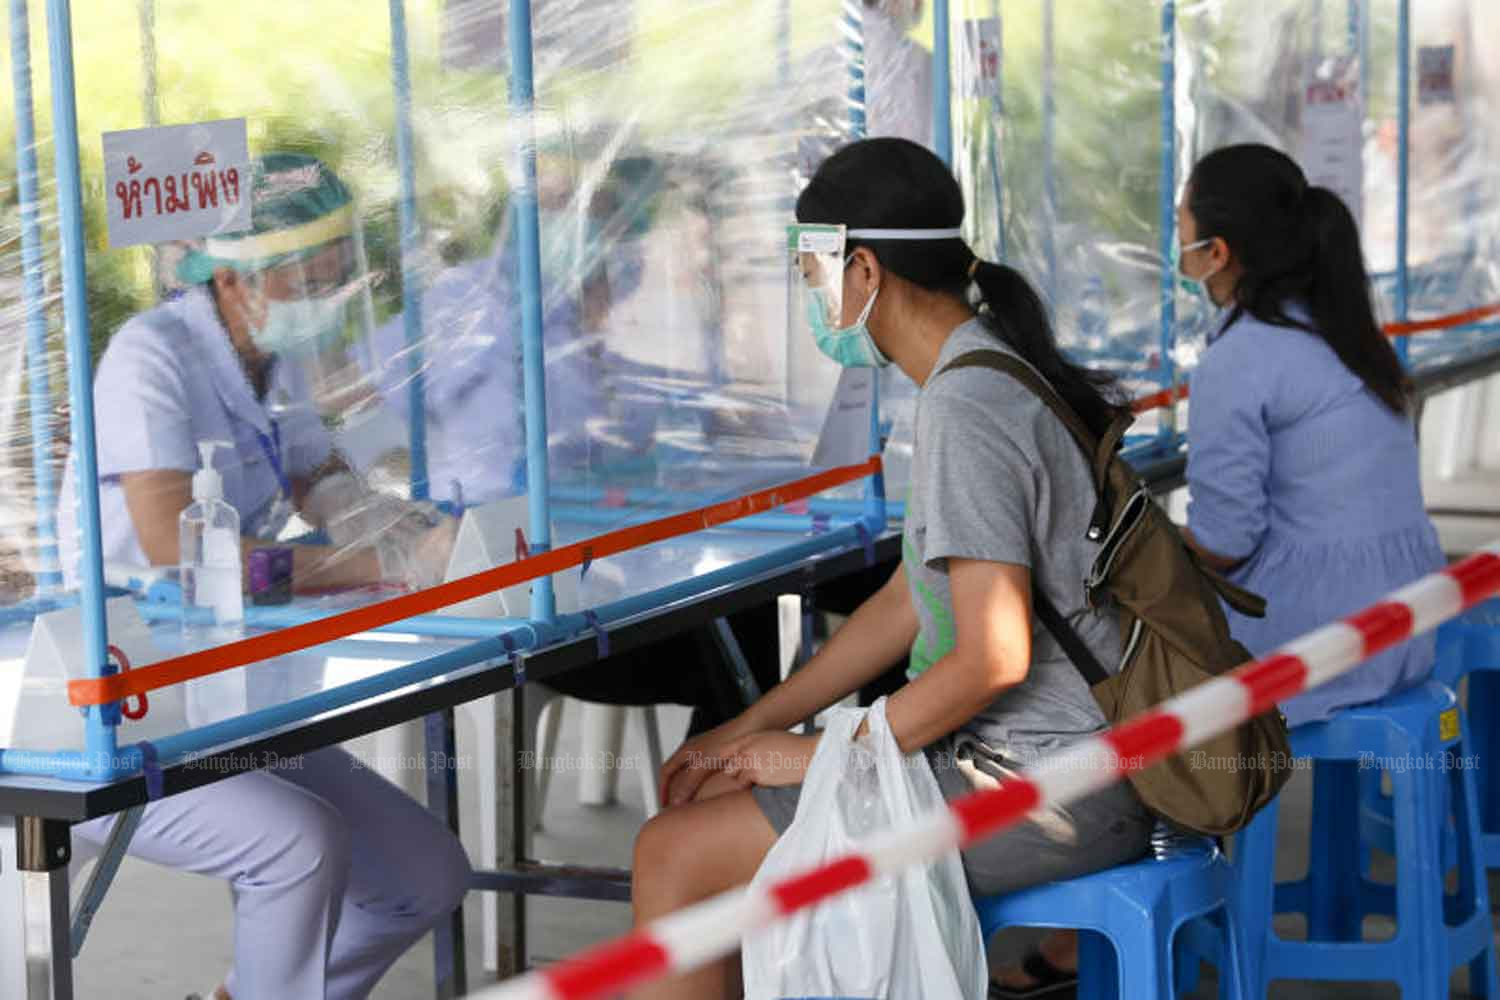 Patients and nurses are separated by a transparent partition at Pranangklao Hospital in Nonthaburi province on Thursday, when the government reported three more deaths from  Covid-19, raising the toll to 15. (Photo: Pattarapong Chatpattarasill)